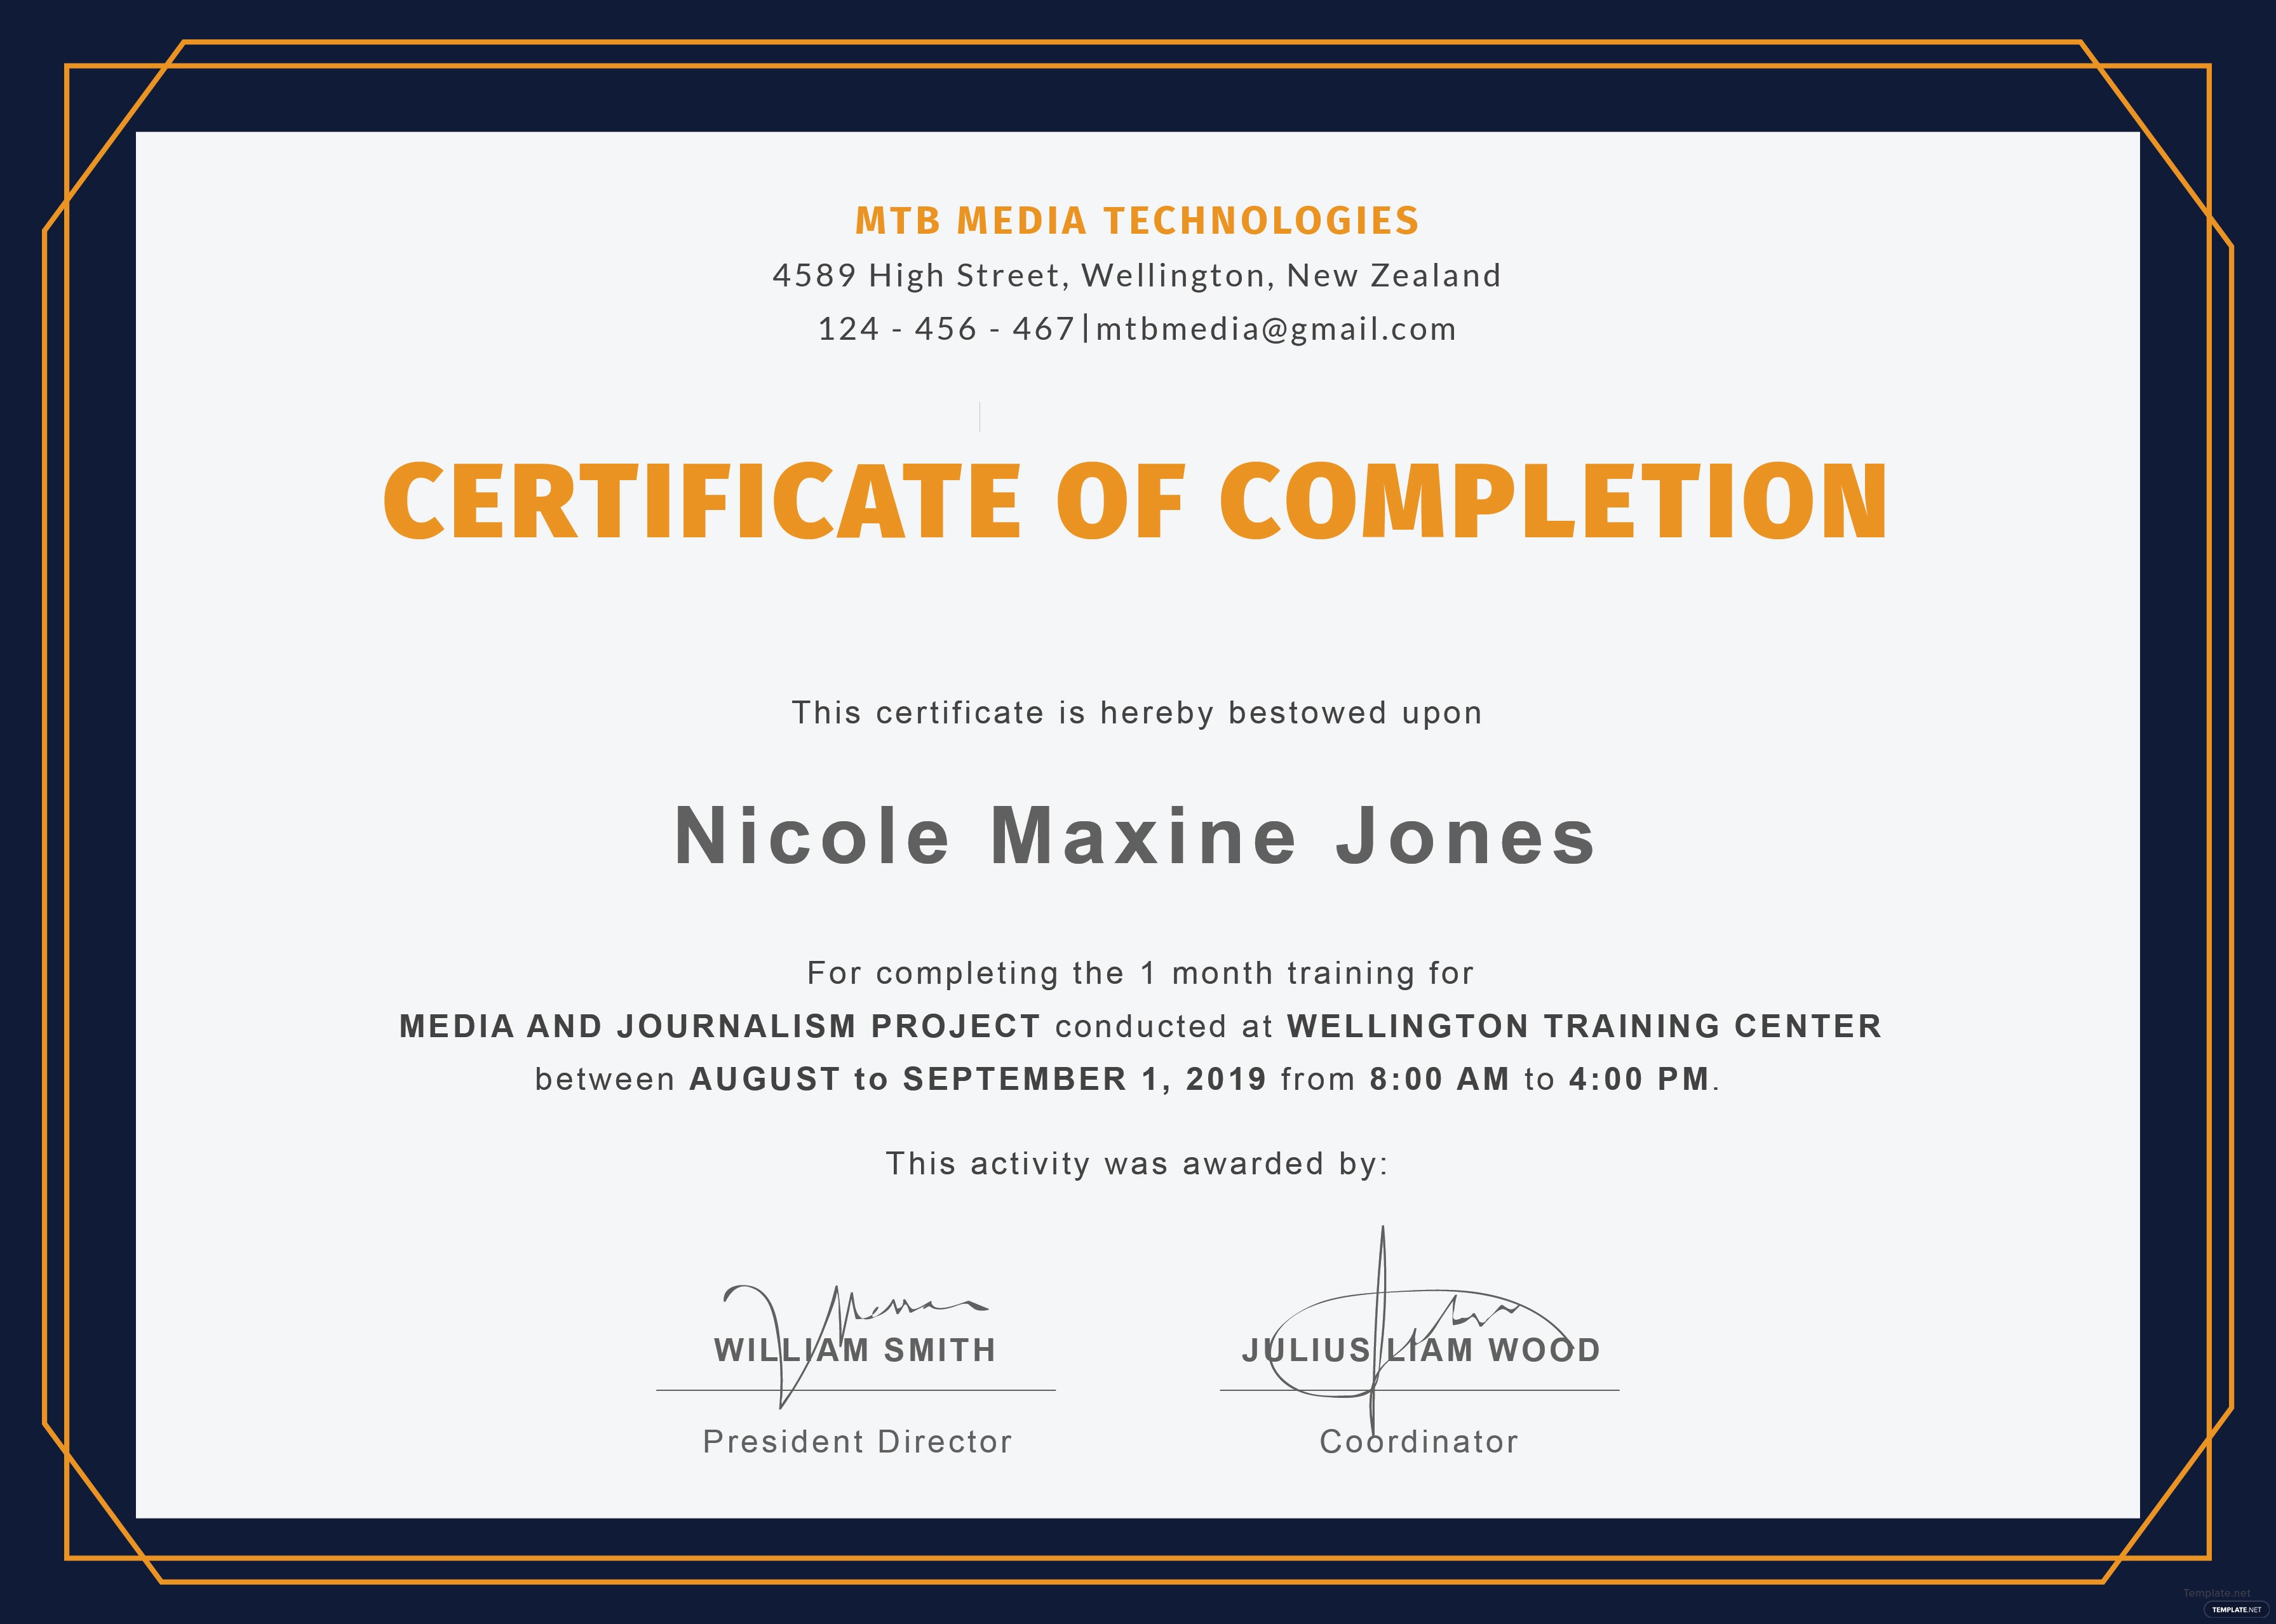 Free training completion certificate template in adobe illustrator click to see full template training completion certificate yadclub Choice Image